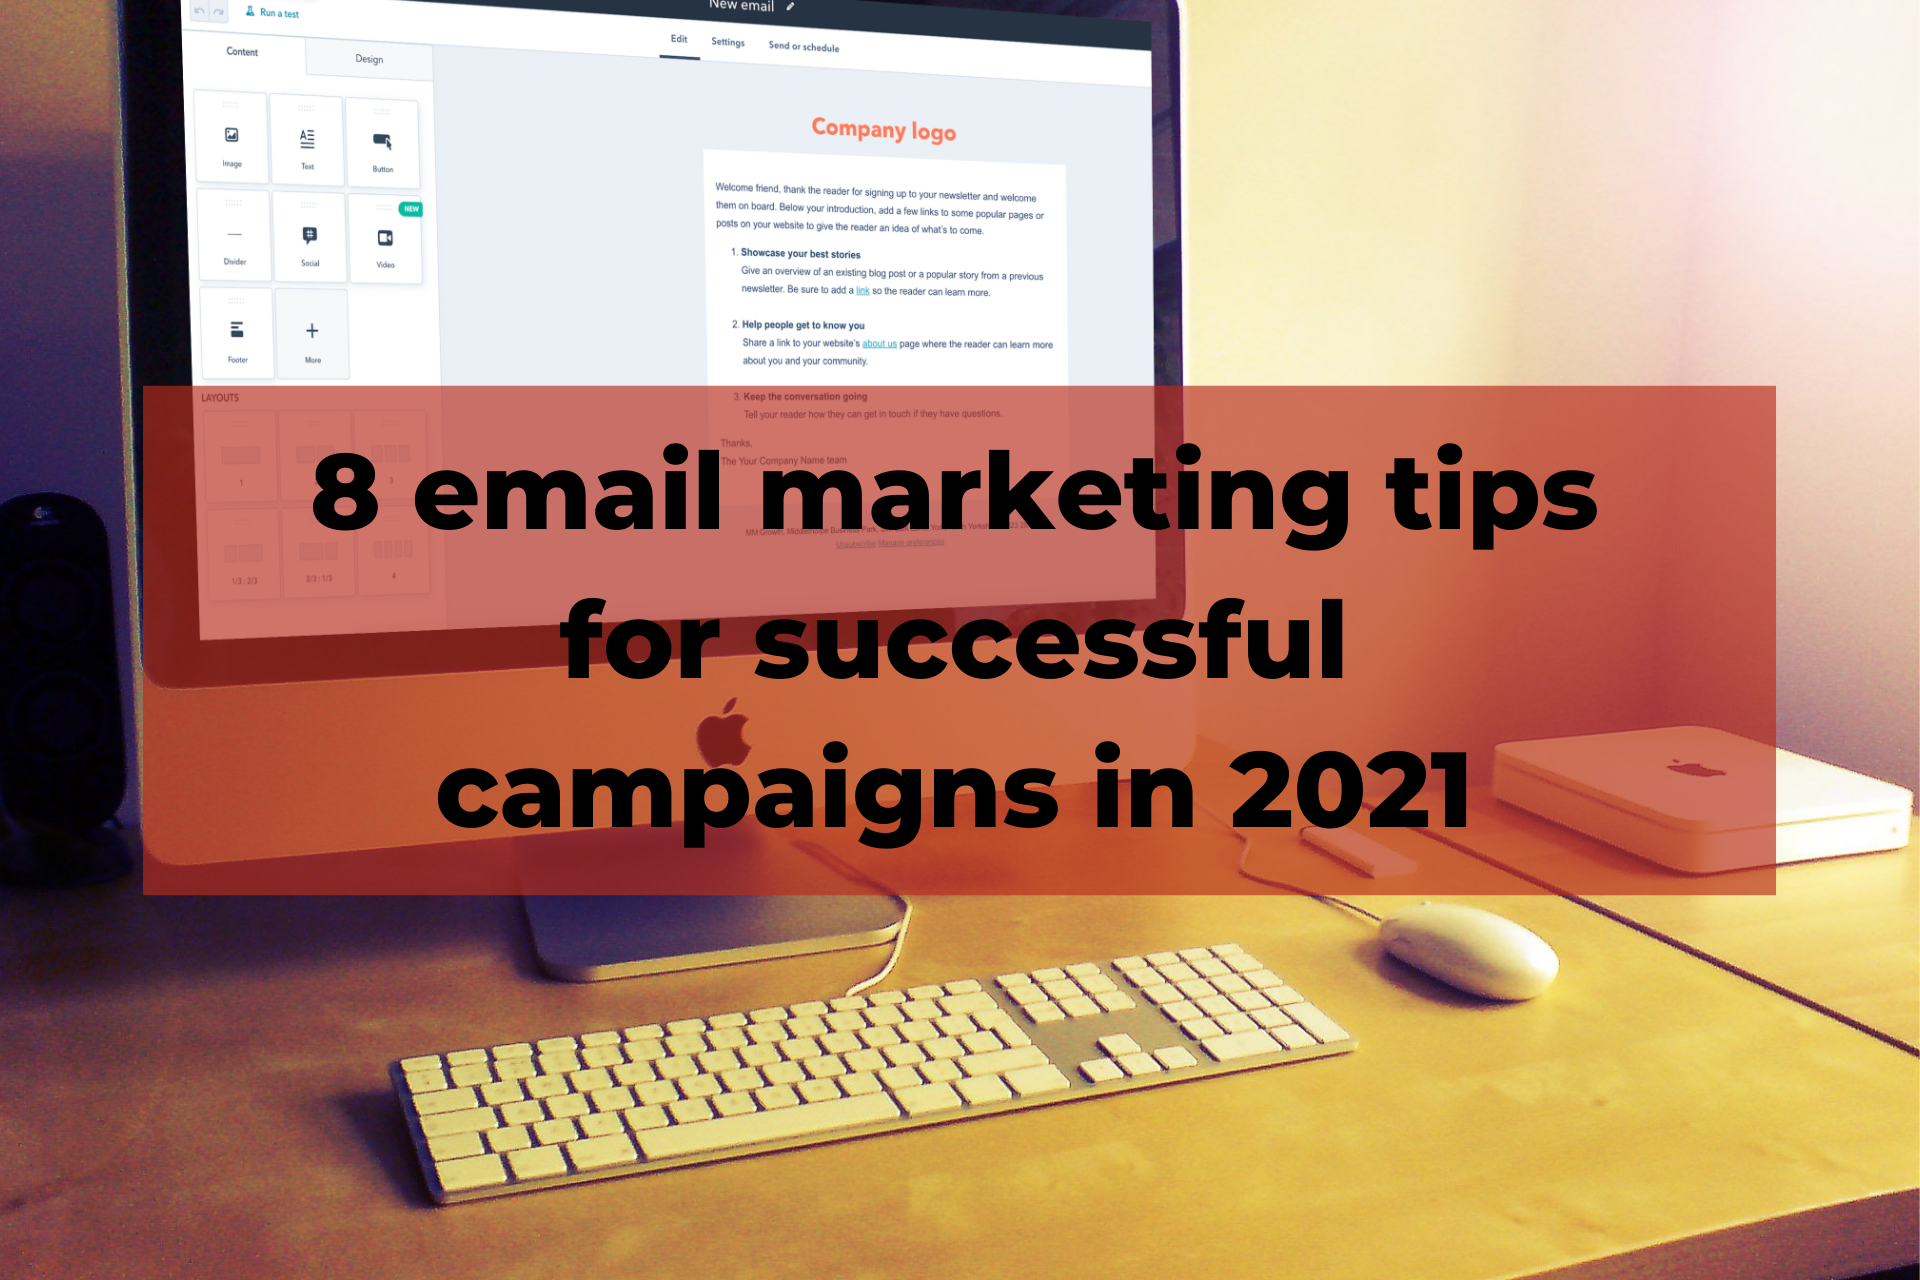 8 email marketing tips for successful campaigns in 2021